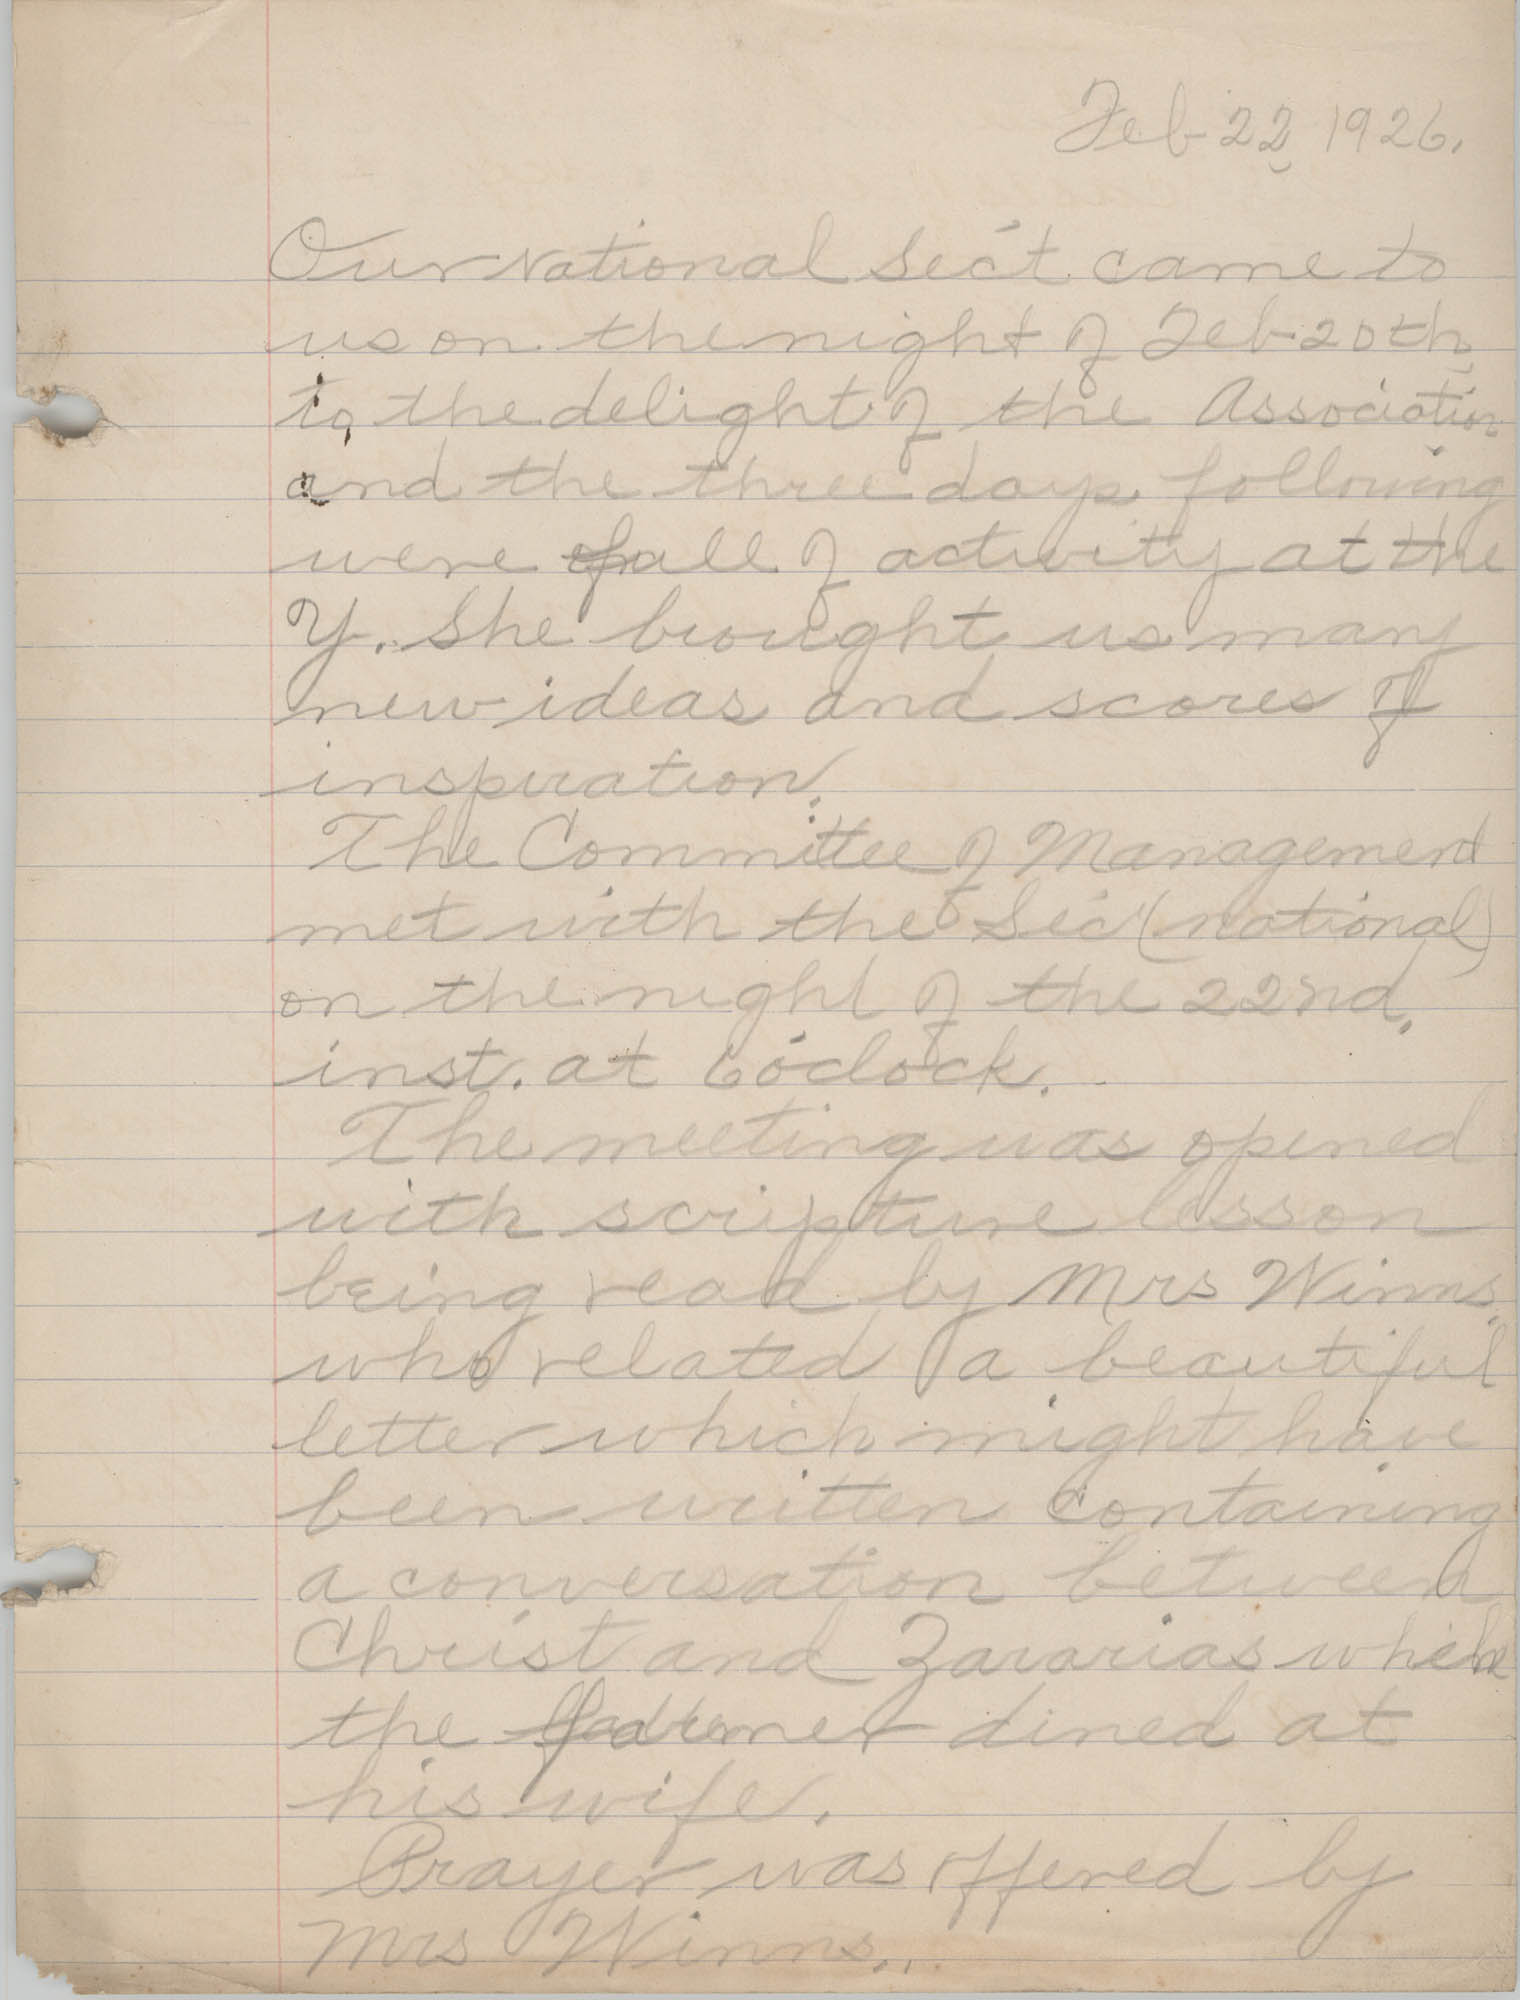 Minutes to the Board of Management, Coming Street Y.W.C.A., February 22, 1926